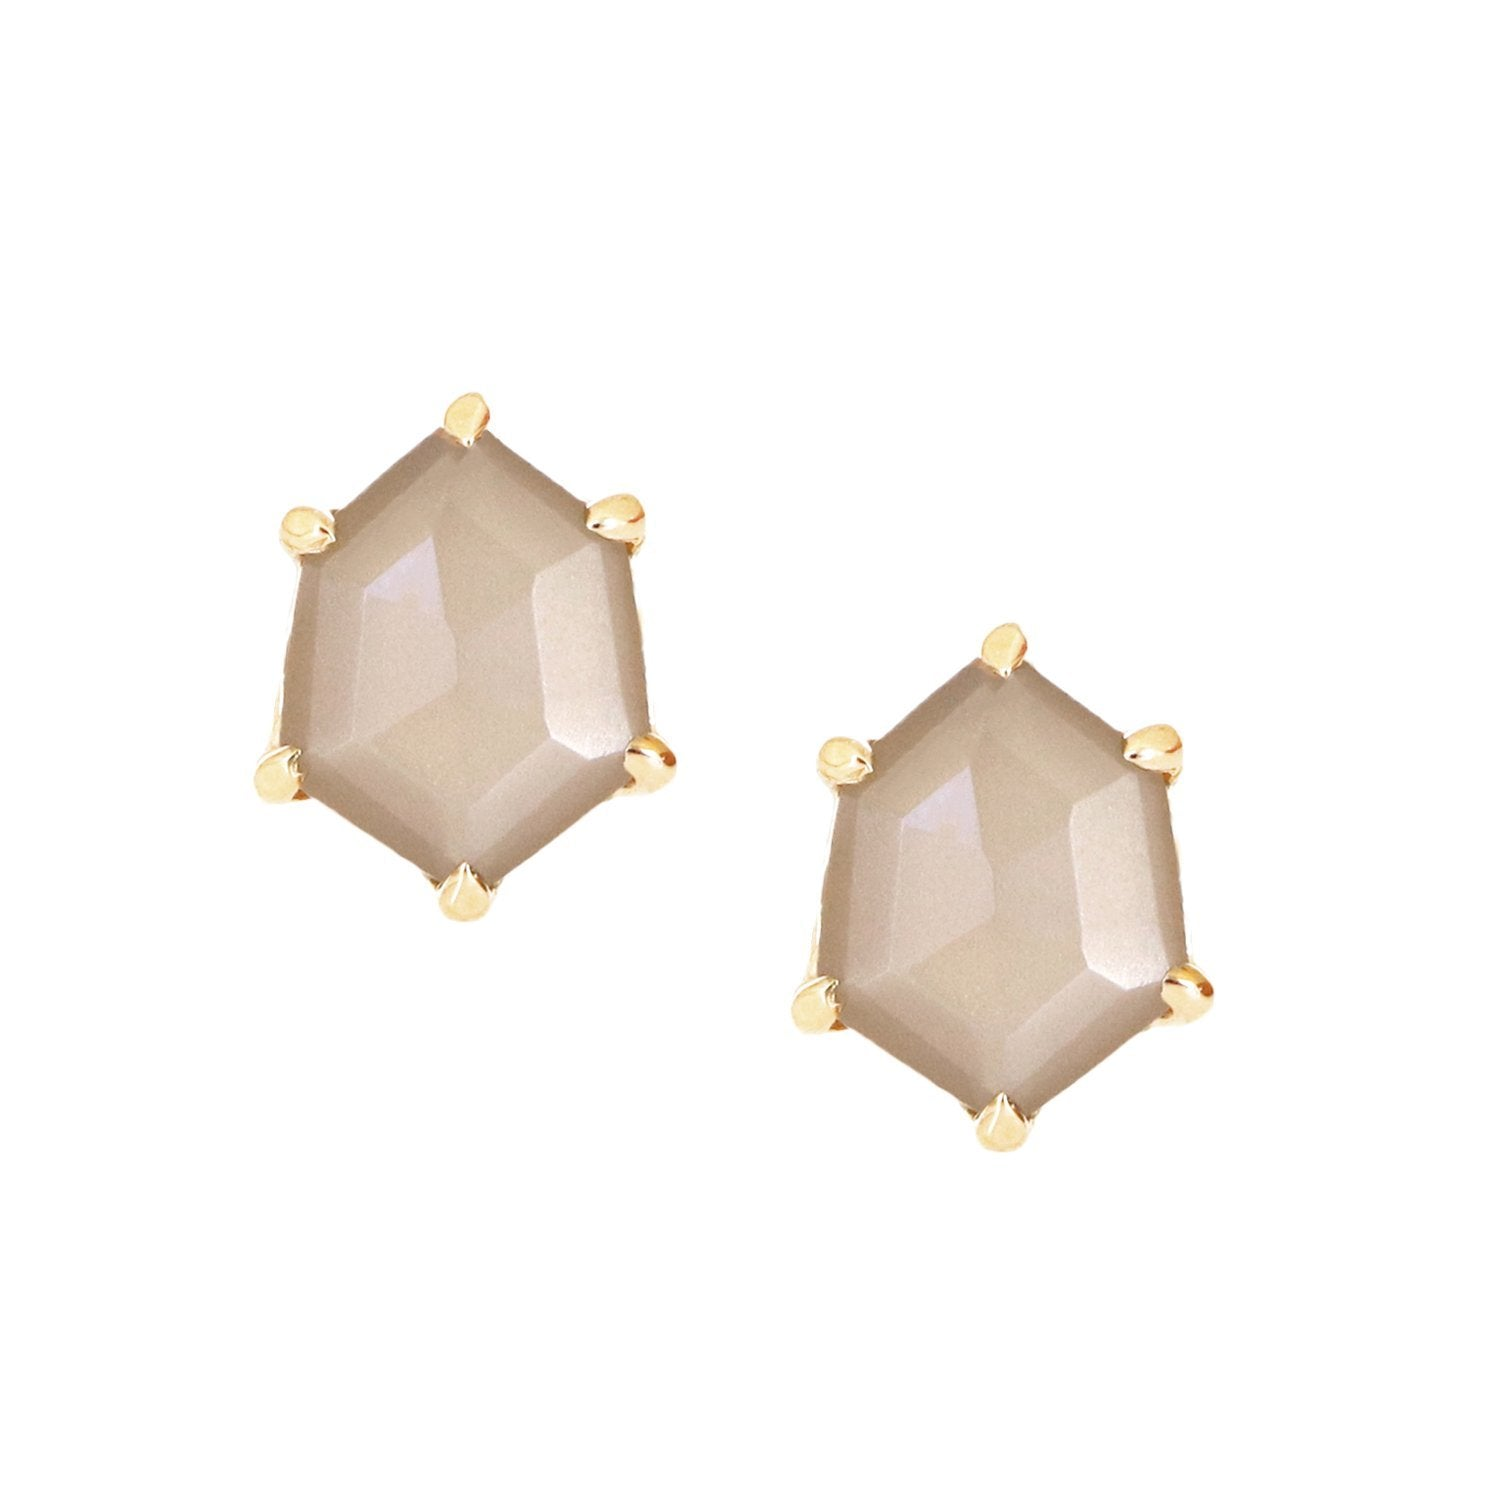 FRAICHE MINI HONOUR SHIELD STUD EARRINGS - CHAI MOONSTONE & GOLD - SO PRETTY CARA COTTER